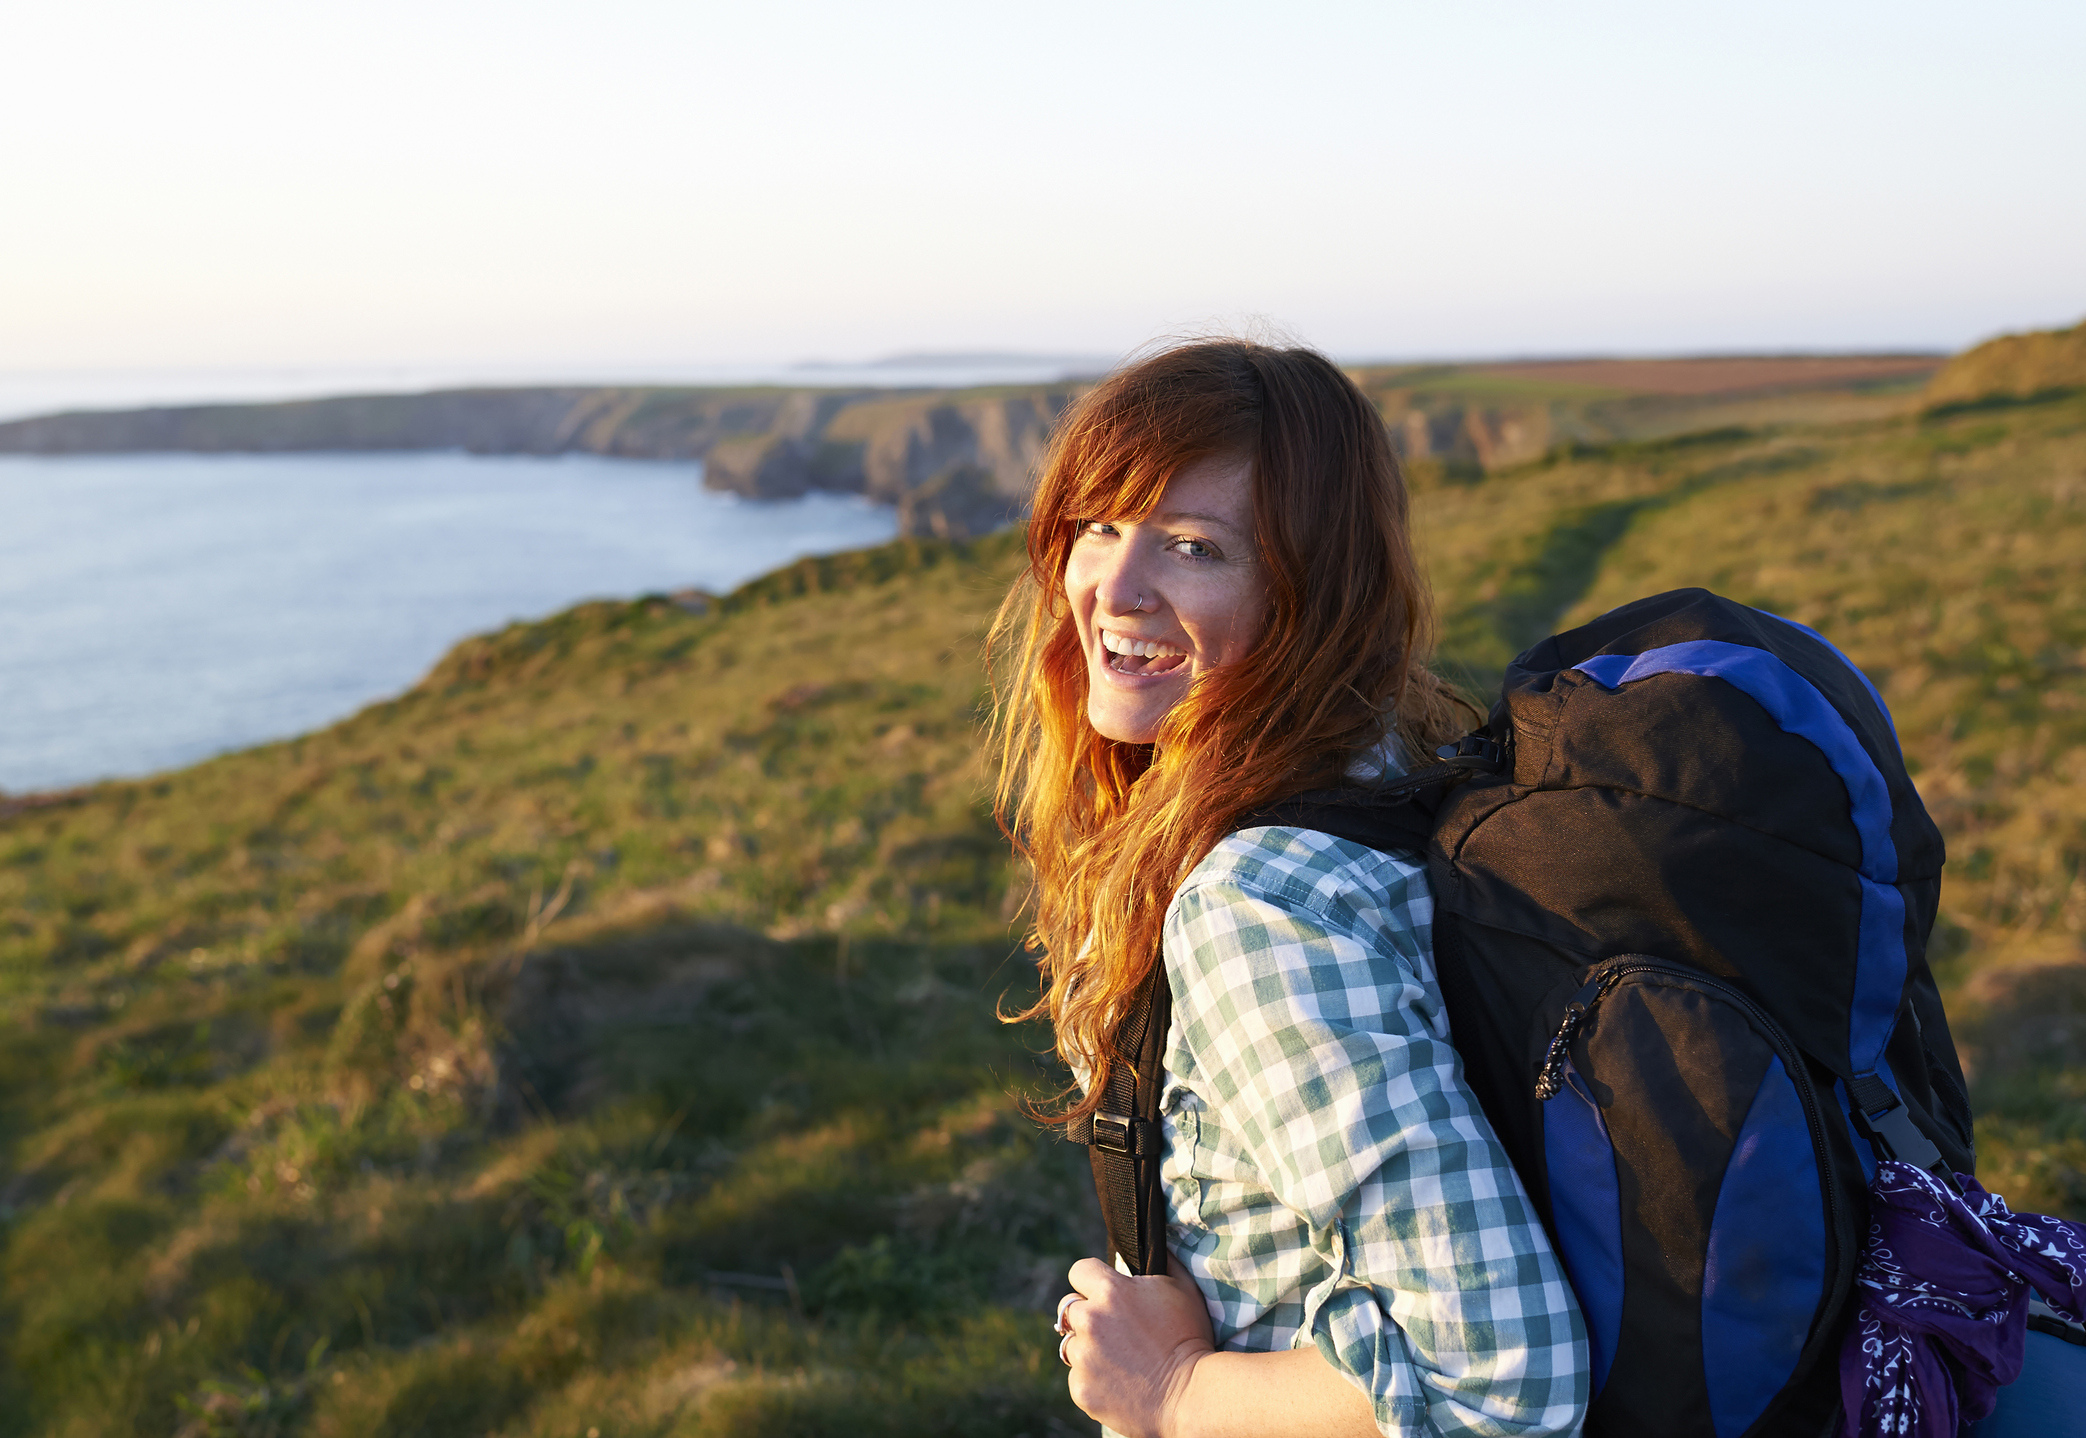 A woman walks along a coastal path.